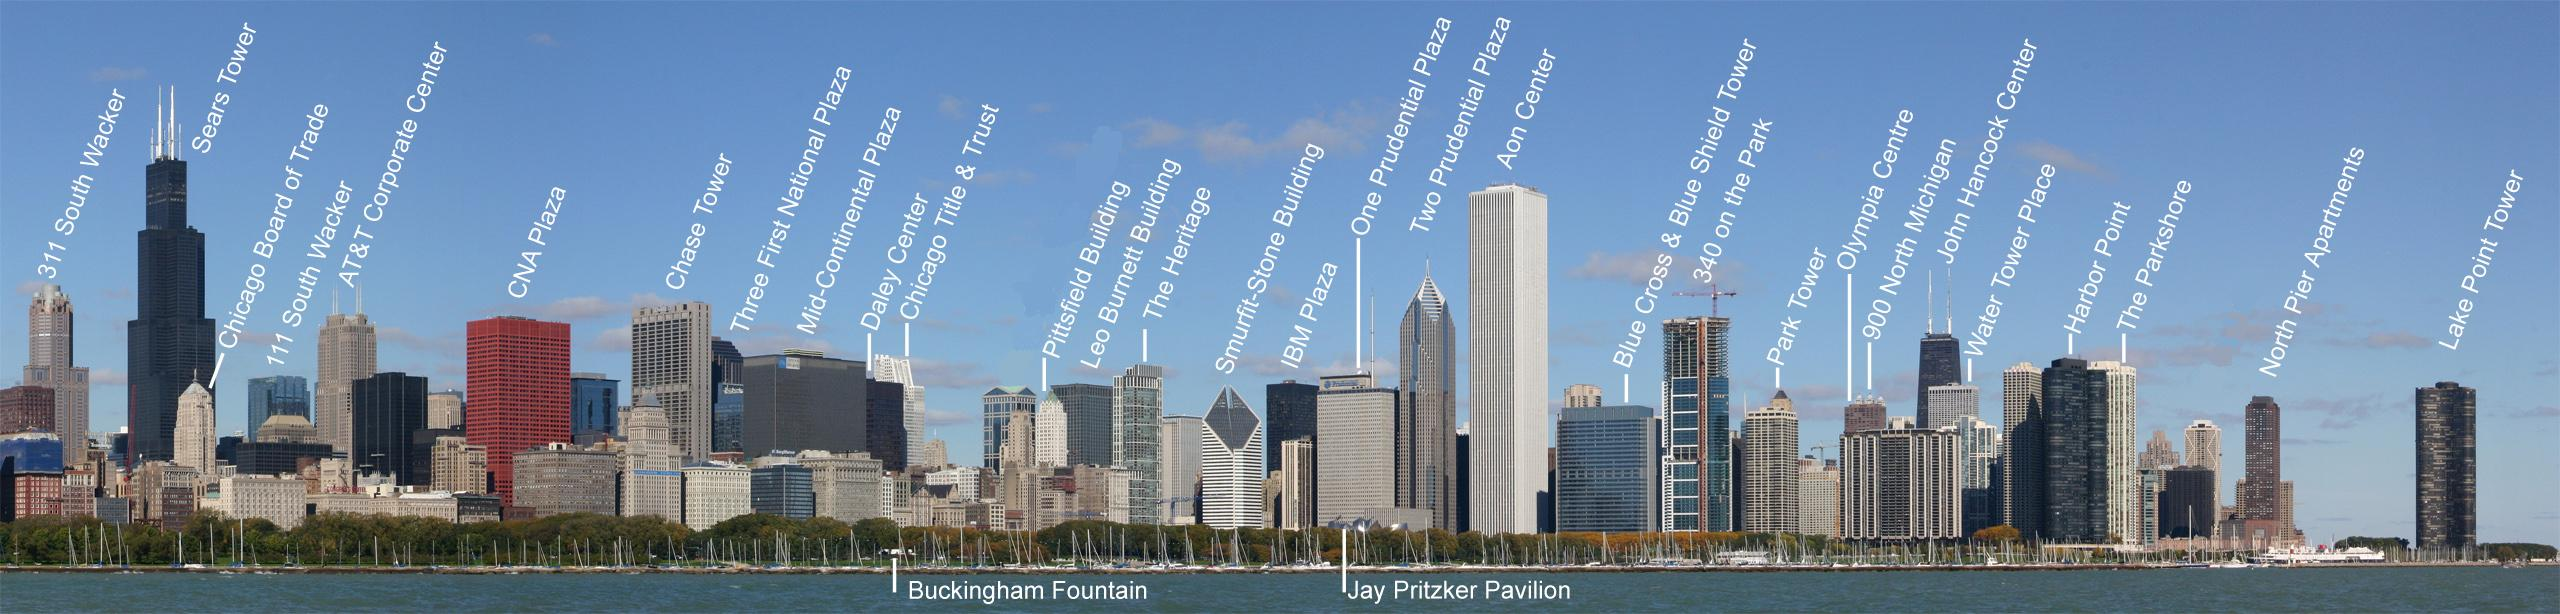 Chicago_Skyline_Crop_Labeled_2560_ver2